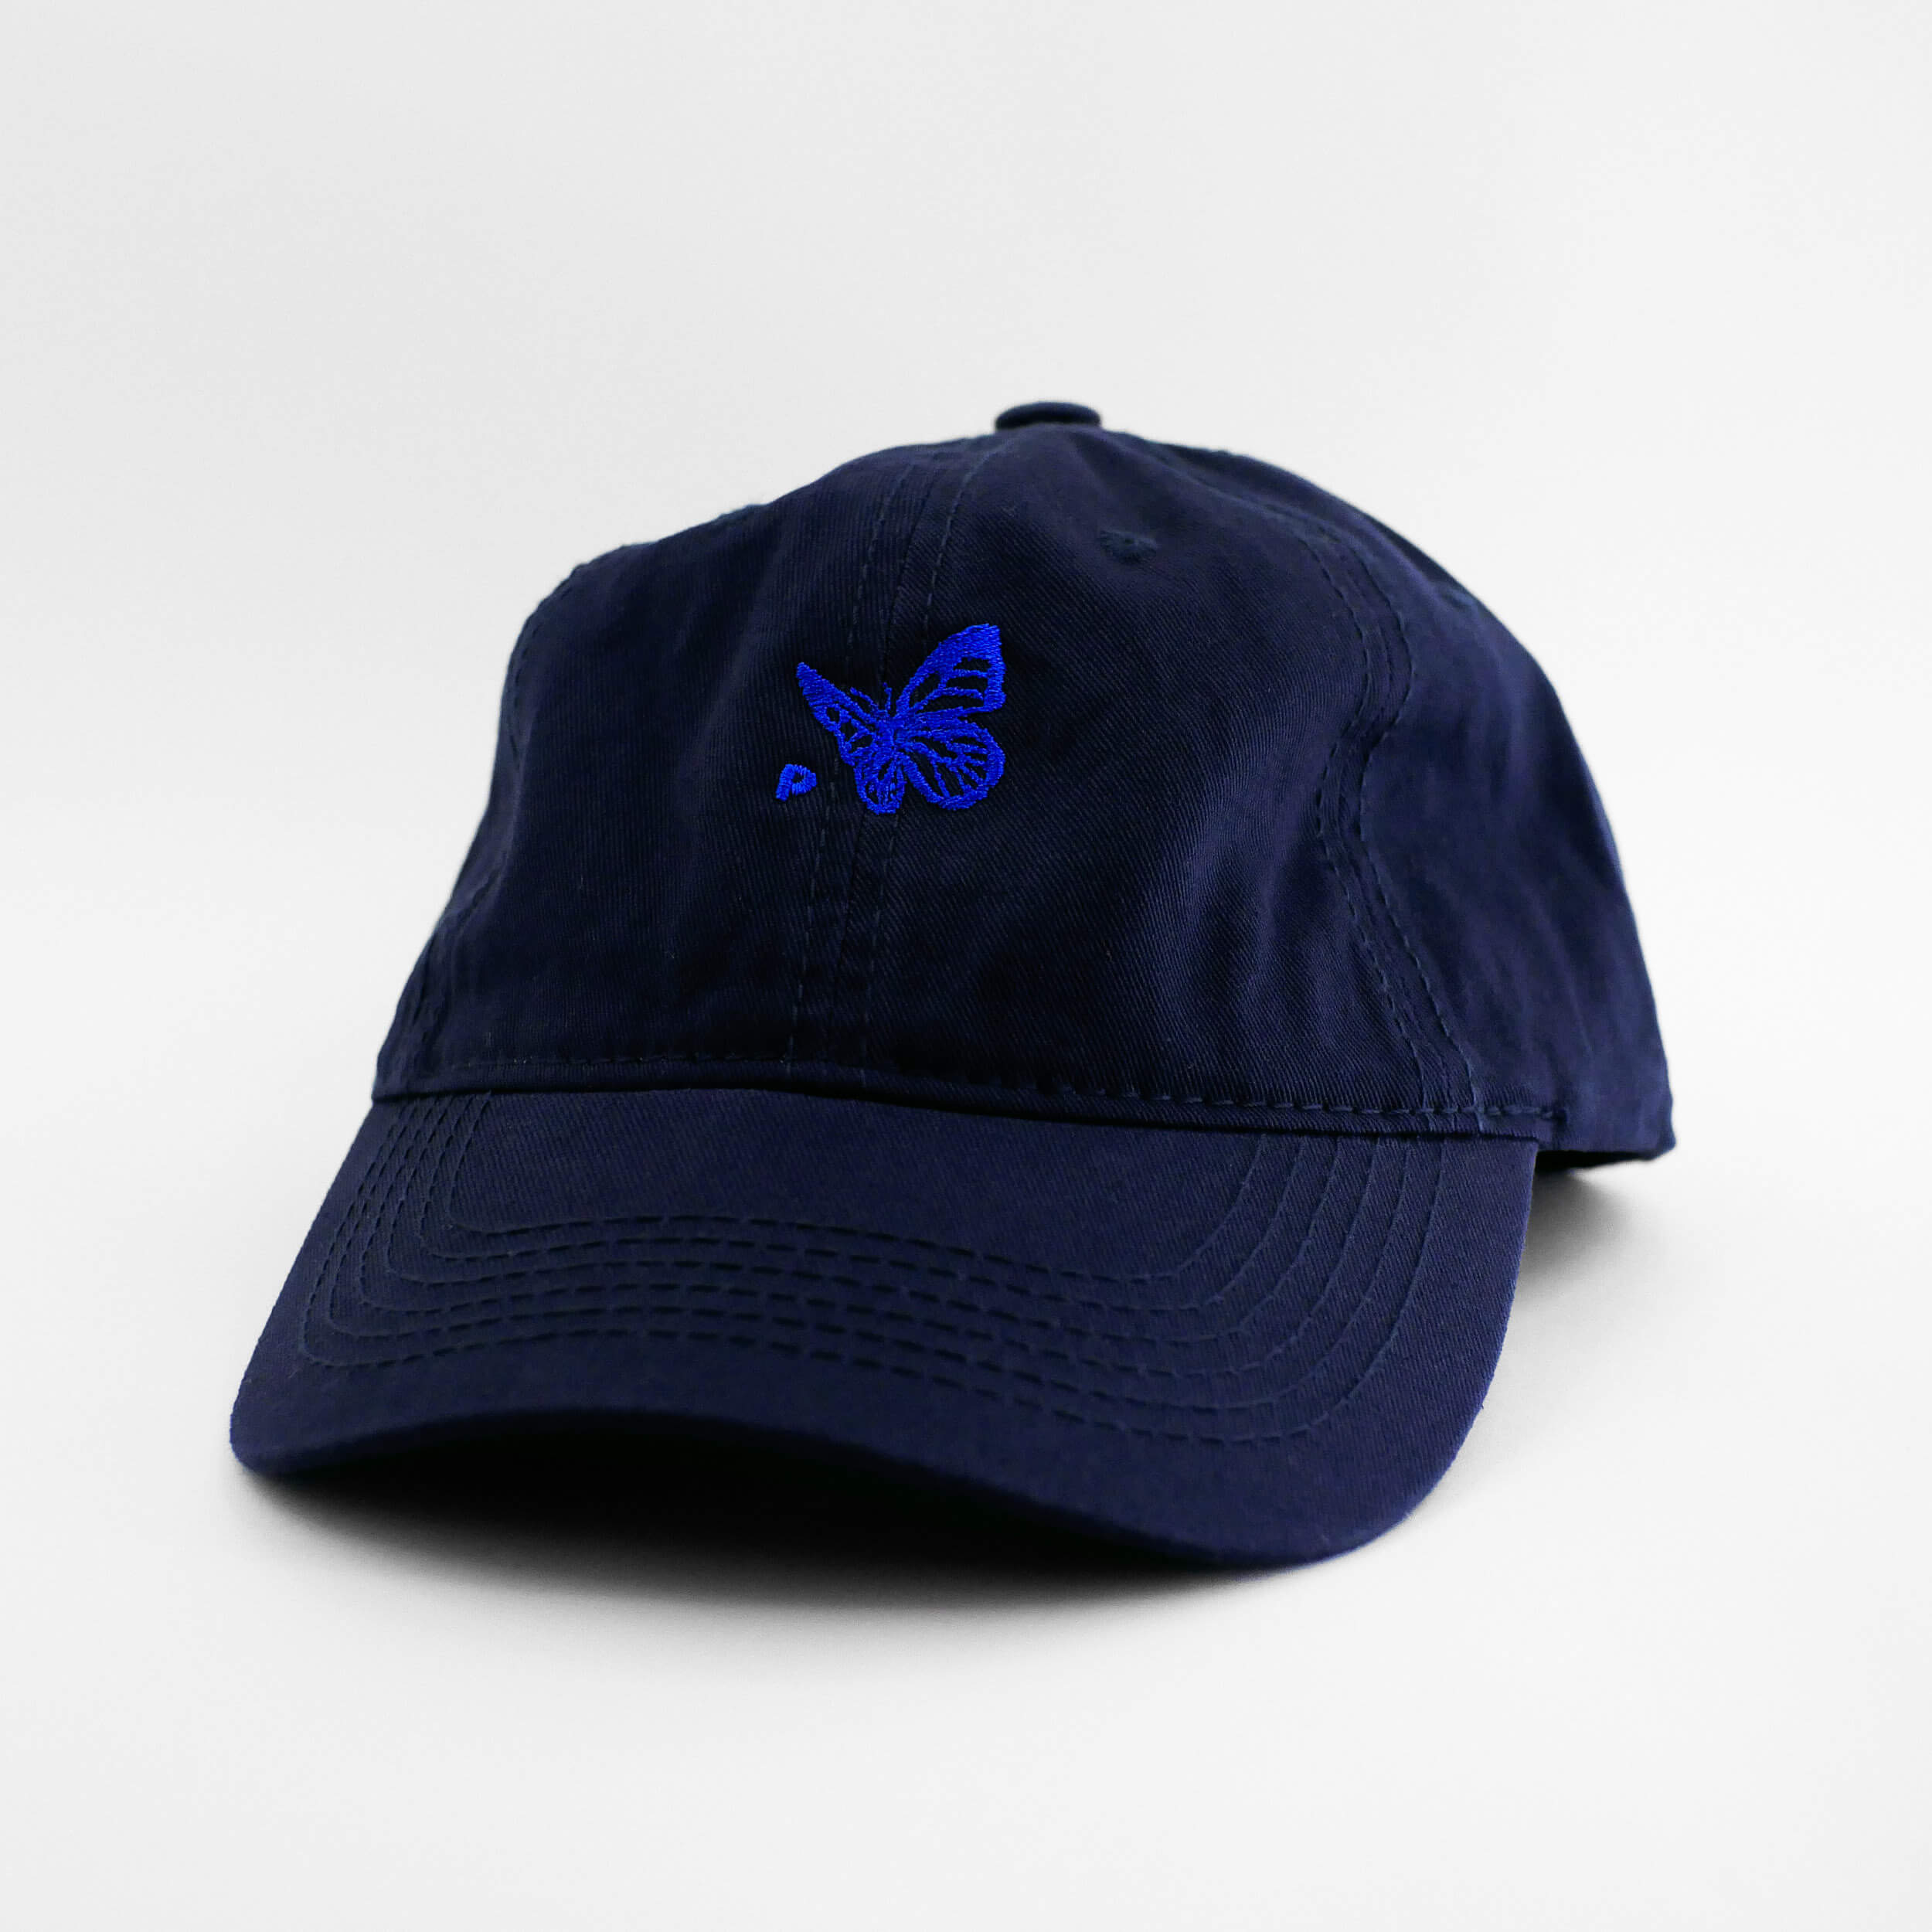 Angle view of the embroidered Buttterfly Logo navy blue dad hat from PHOSIS Clothing